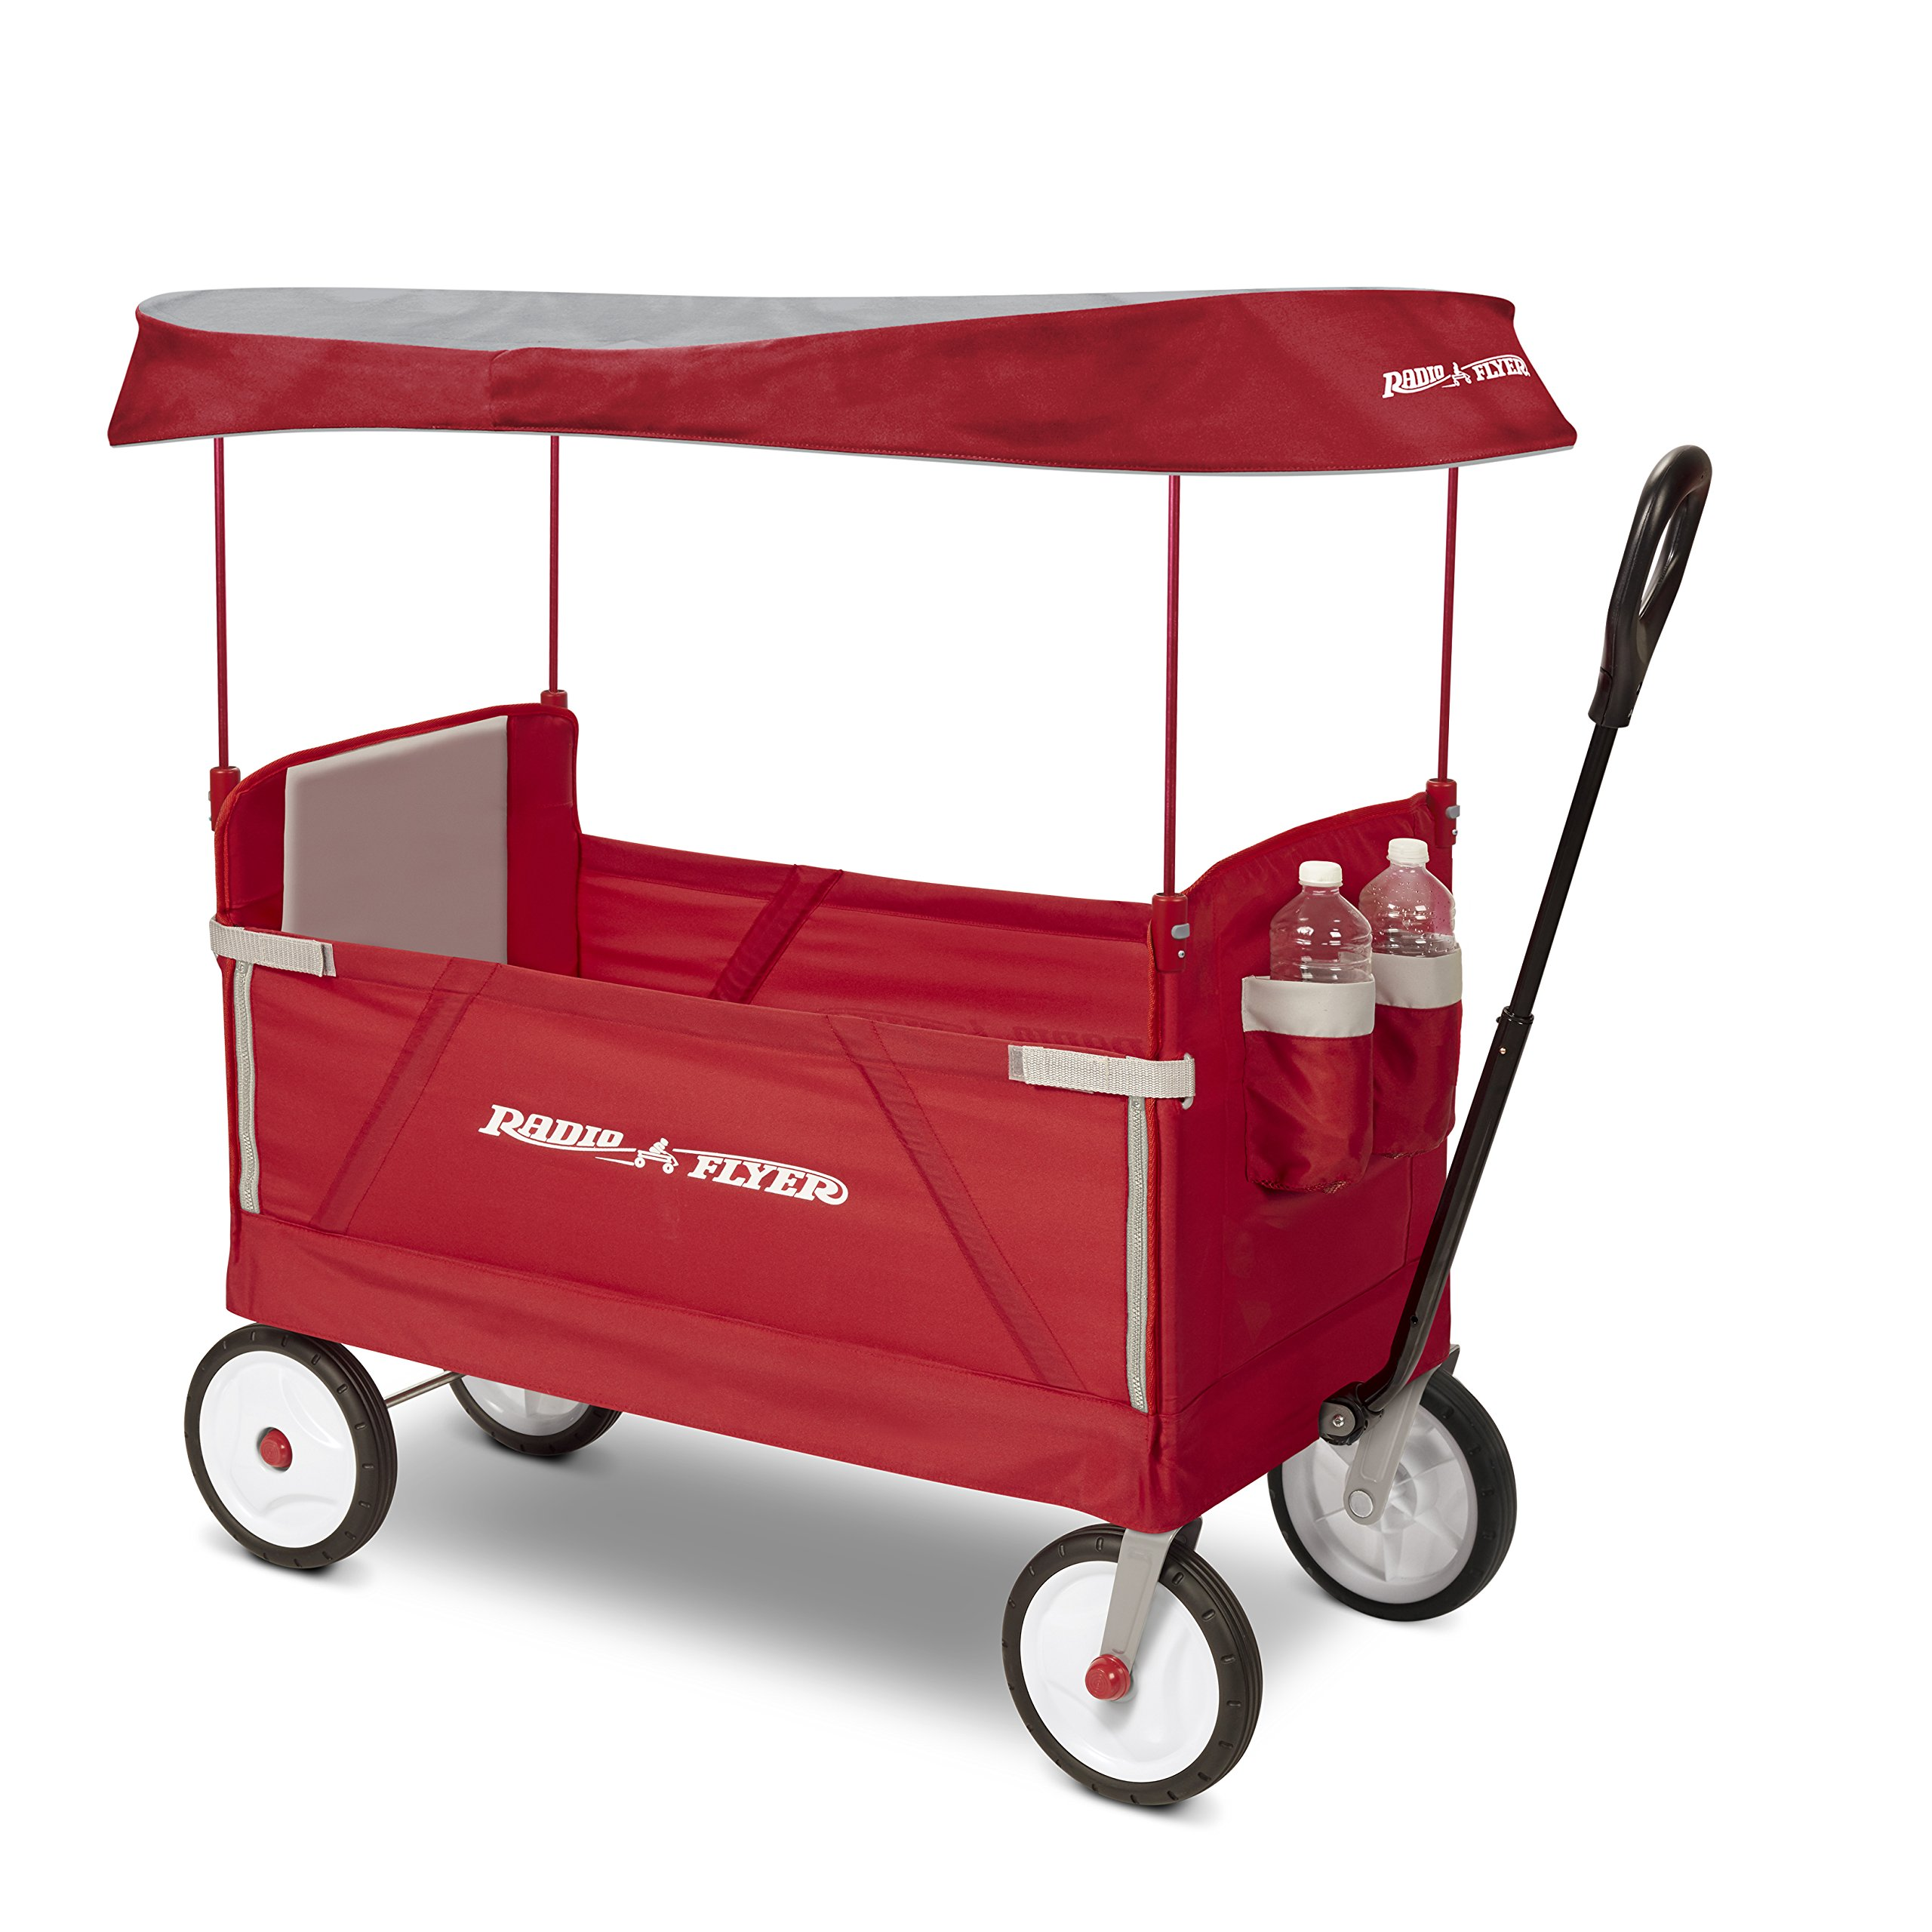 Galleon - Radio Flyer 3-In-1 EZ Folding Wagon With Canopy For Kids And Cargo  sc 1 st  Galleon & Galleon - Radio Flyer 3-In-1 EZ Folding Wagon With Canopy For Kids ...